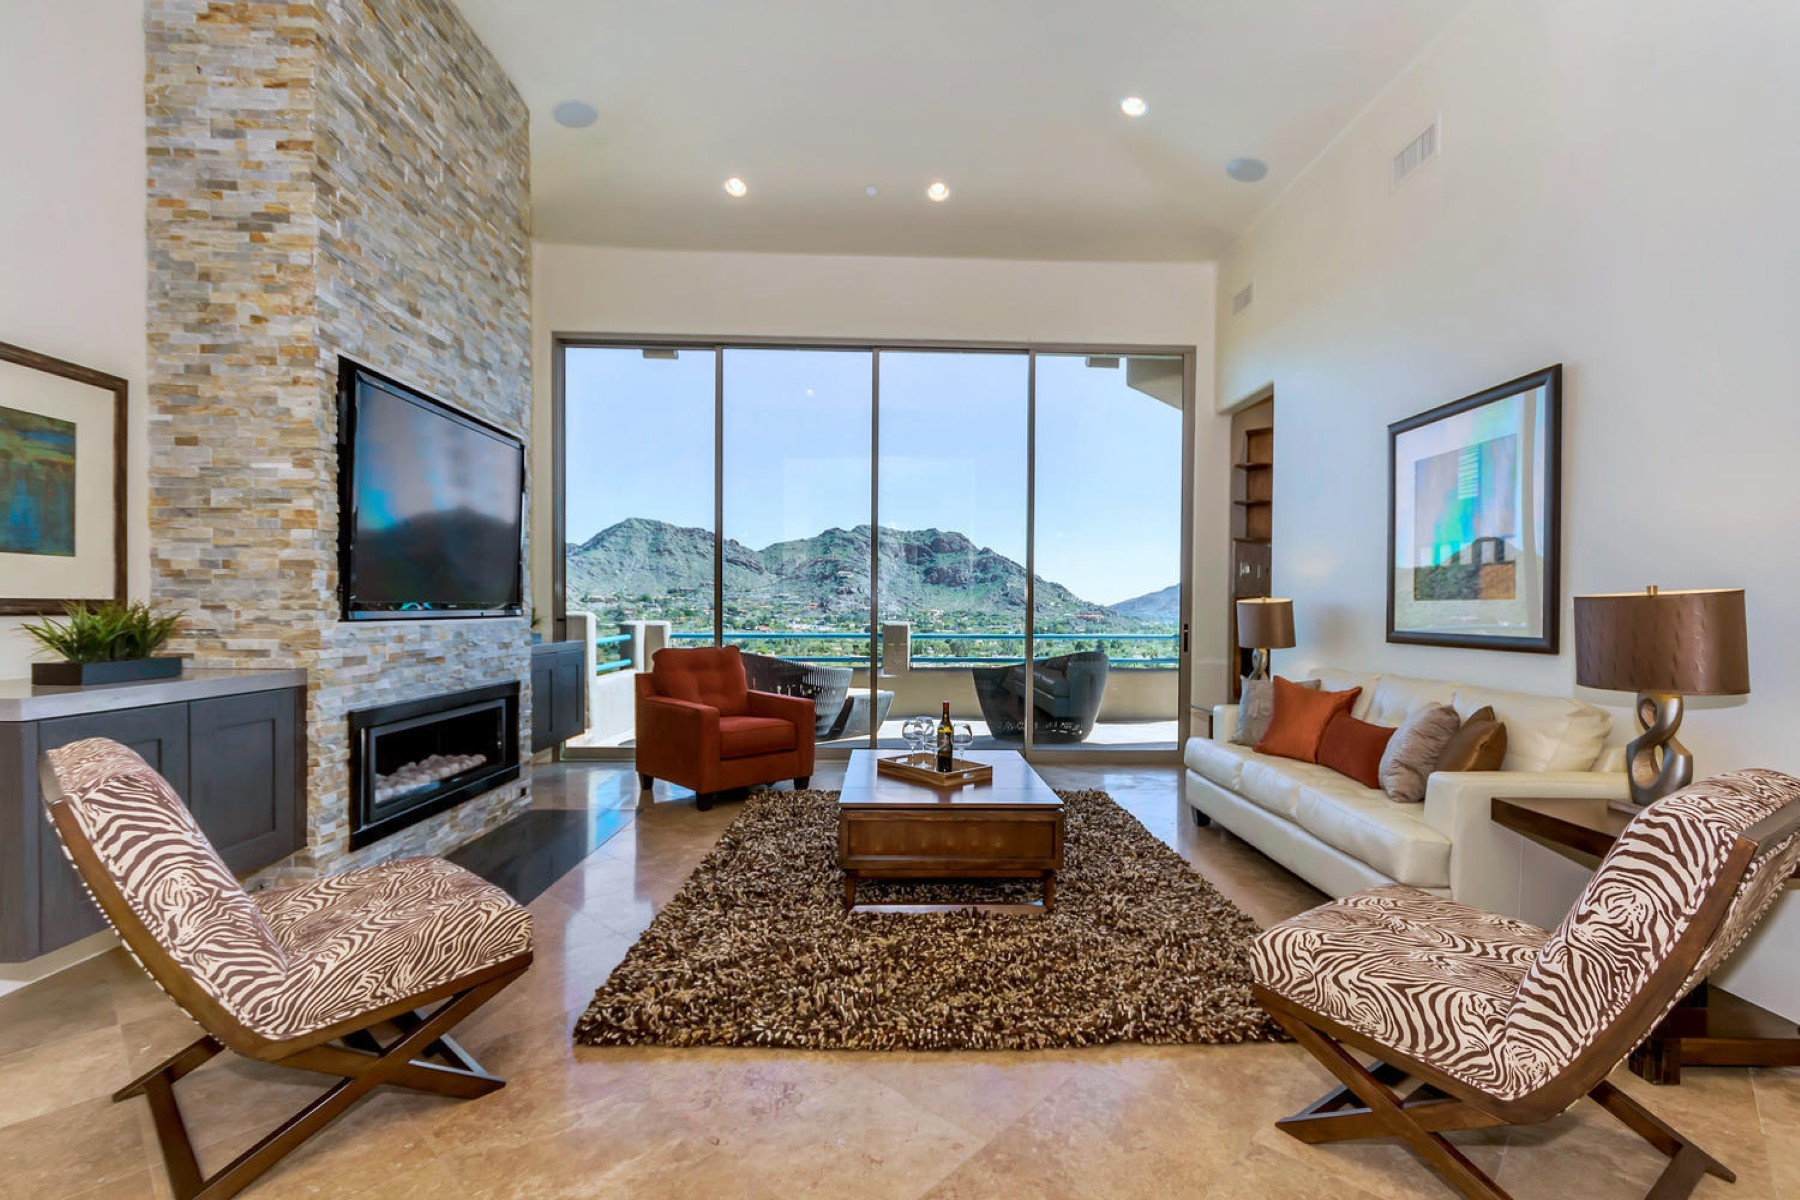 Maison unifamiliale pour l Vente à Gorgeous home with the most beautiful views in all of Paradise Valley 4748 E White Dr Paradise Valley, Arizona, 85253 États-Unis